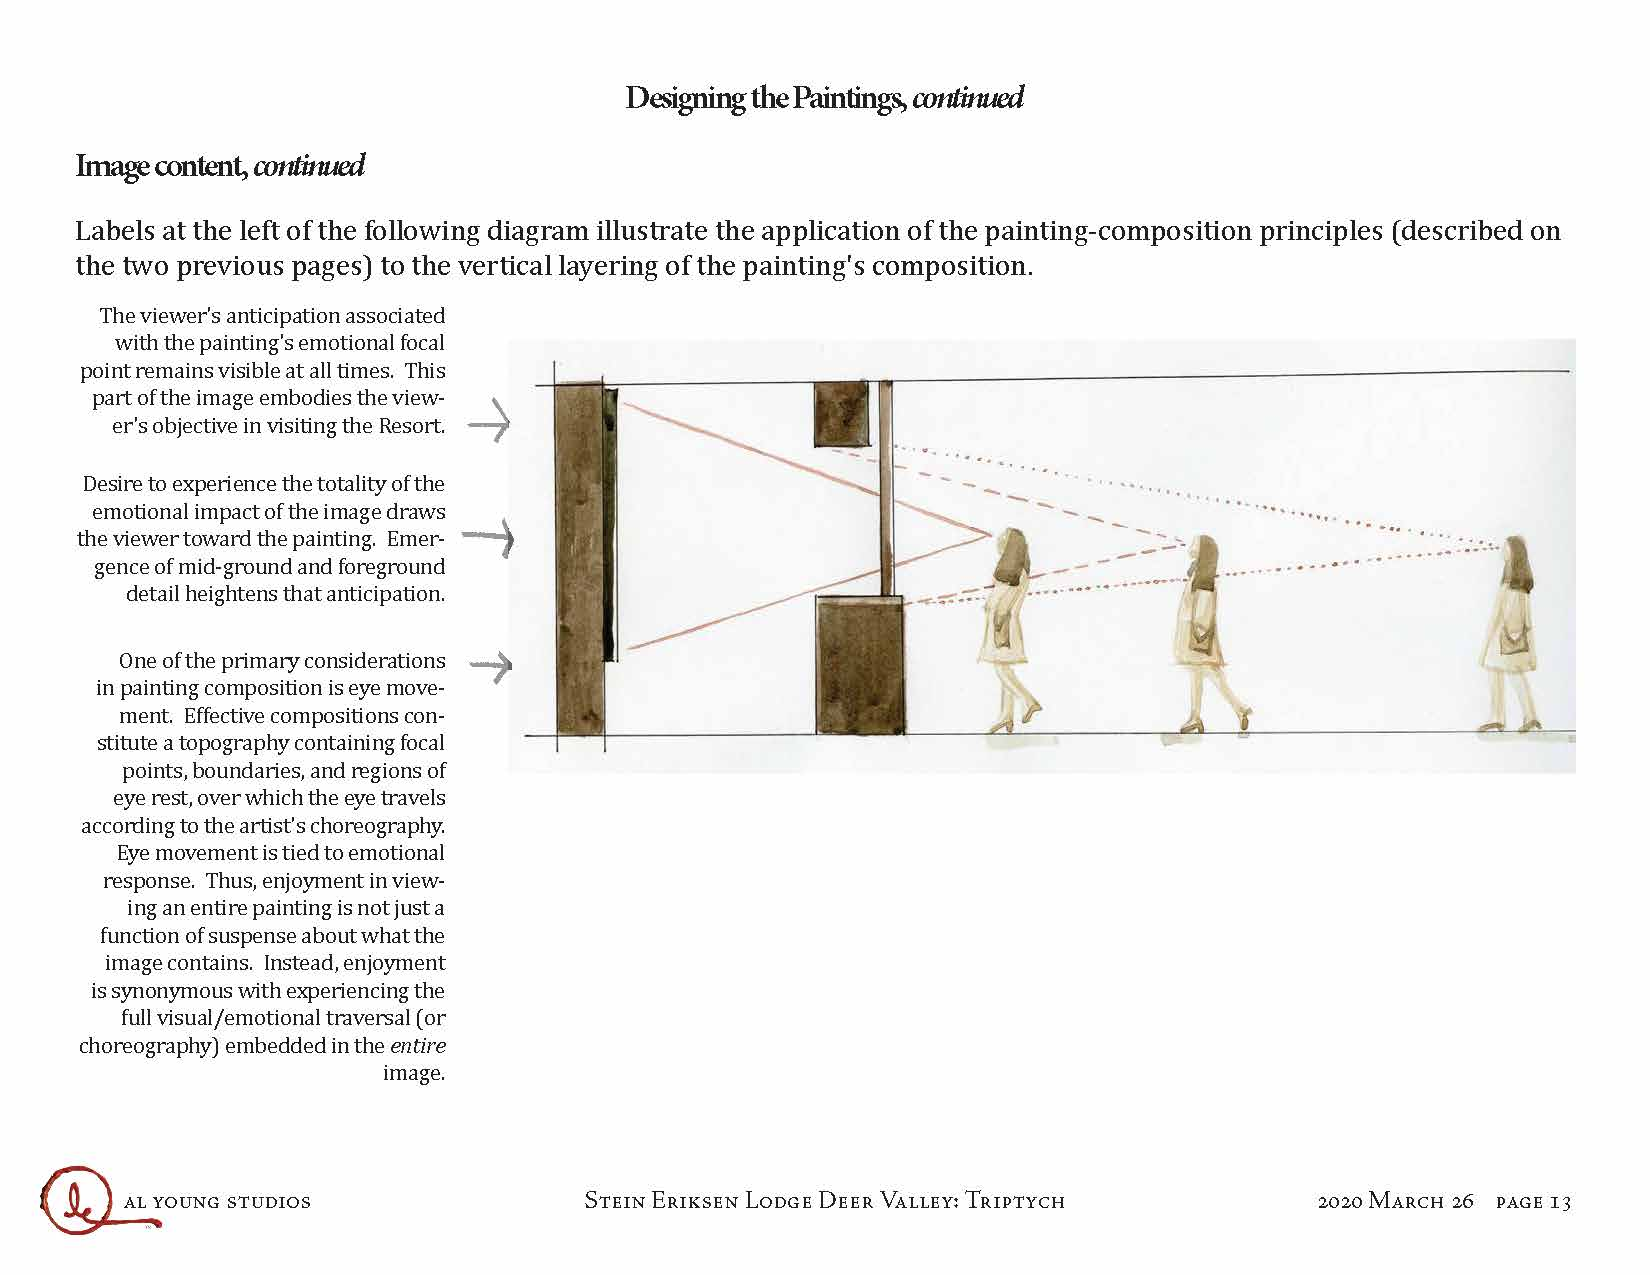 Following the February site visit, the Studios prepared a design document setting forth principles i...